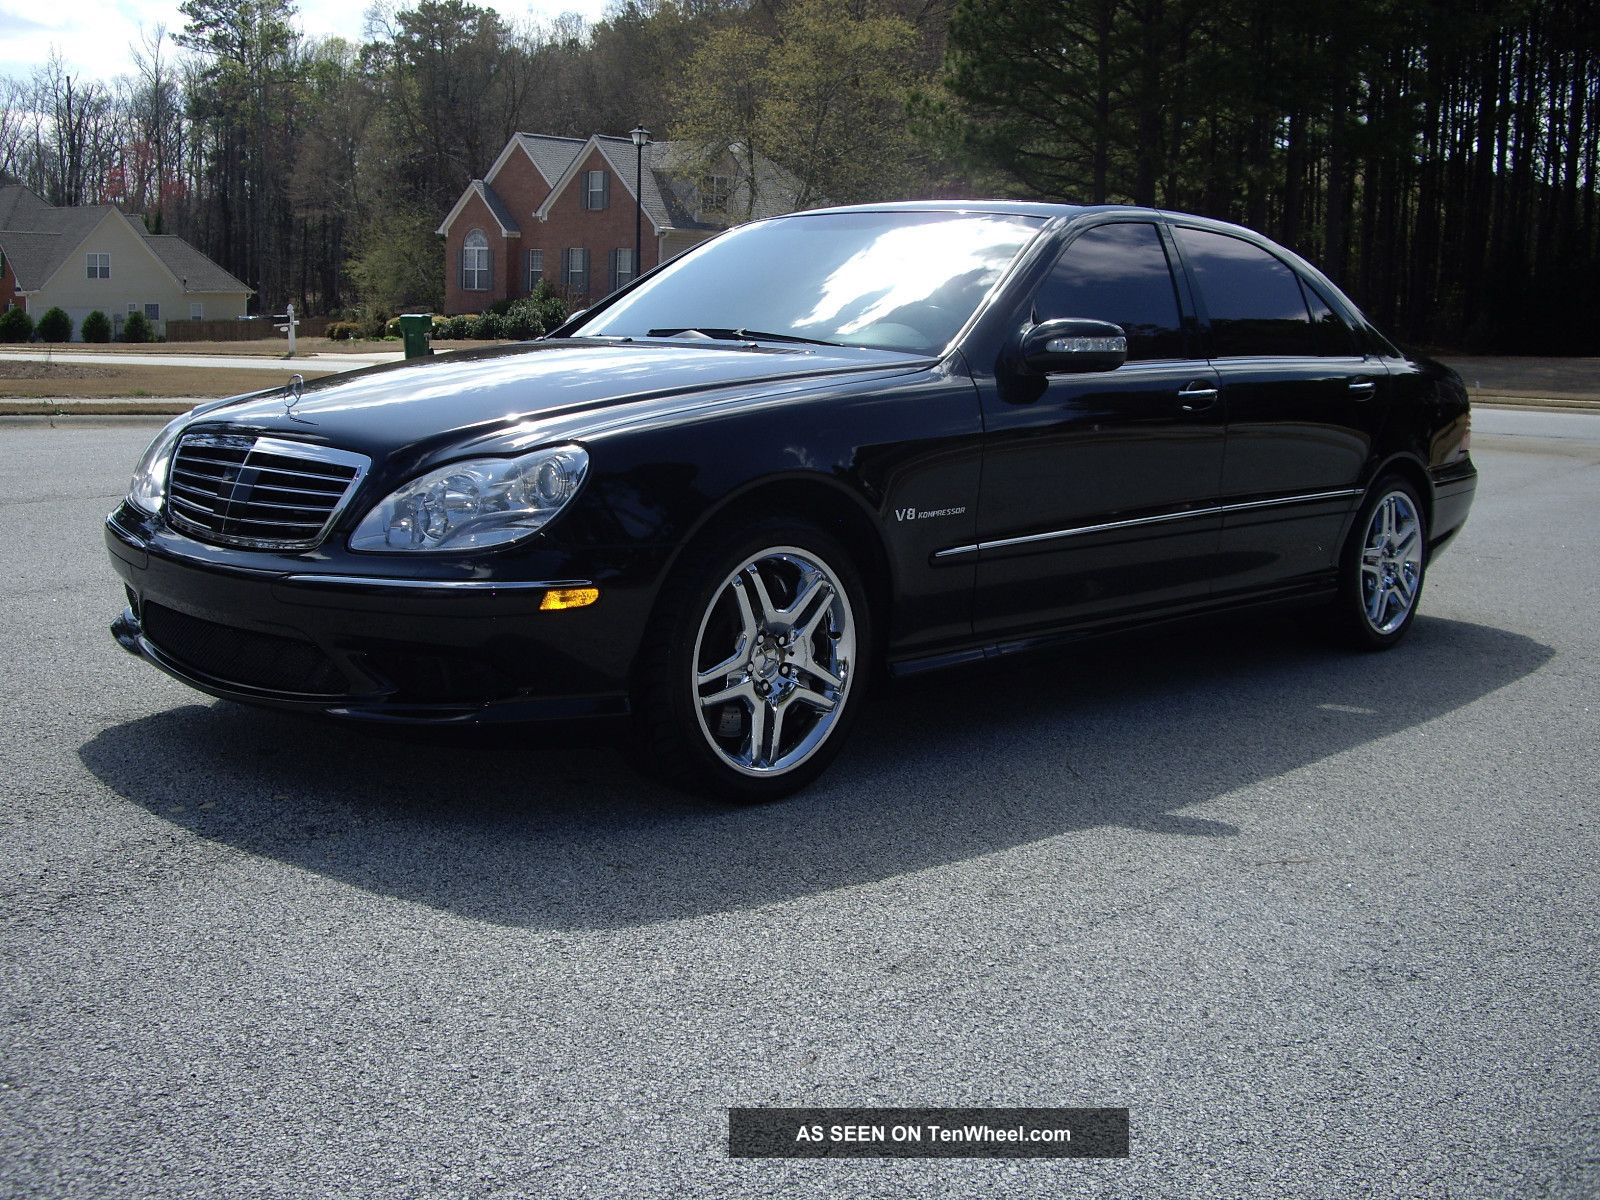 2005 mercedes benz s55 amg 4d sedan for Mercedes benz s55